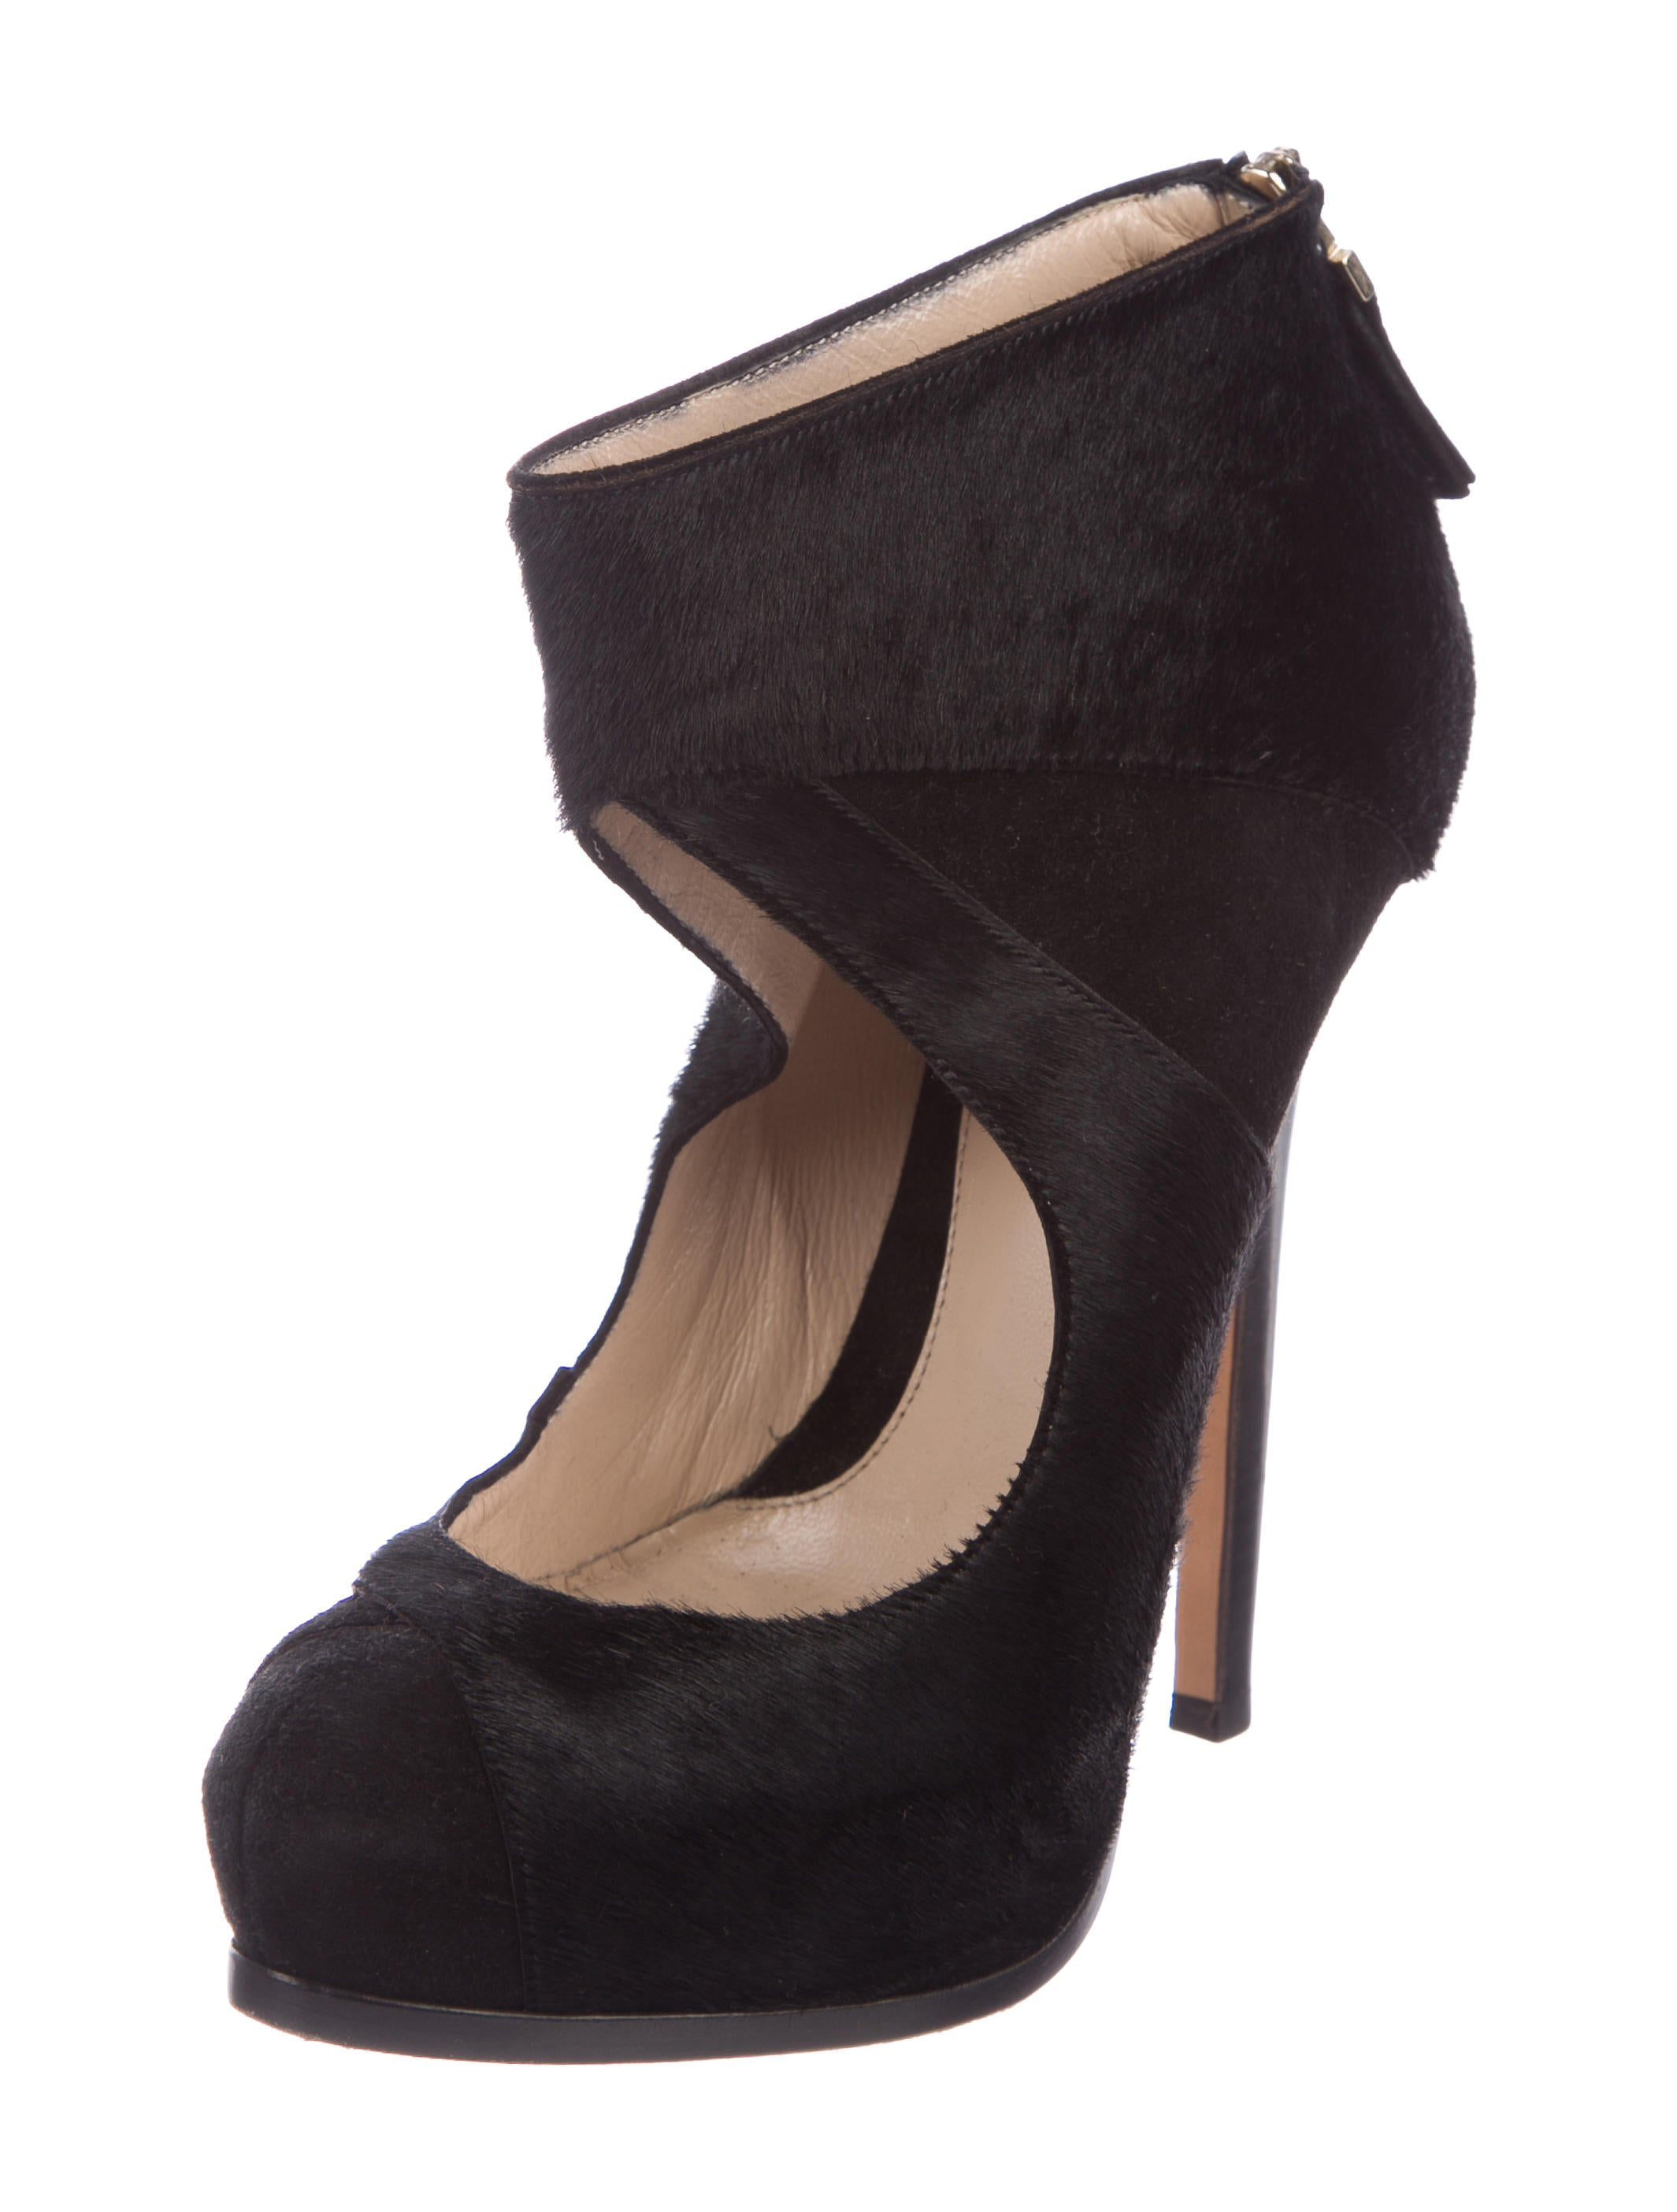 best prices sale online choice for sale Fendi Ponyhair Cutout Booties WpgpAj